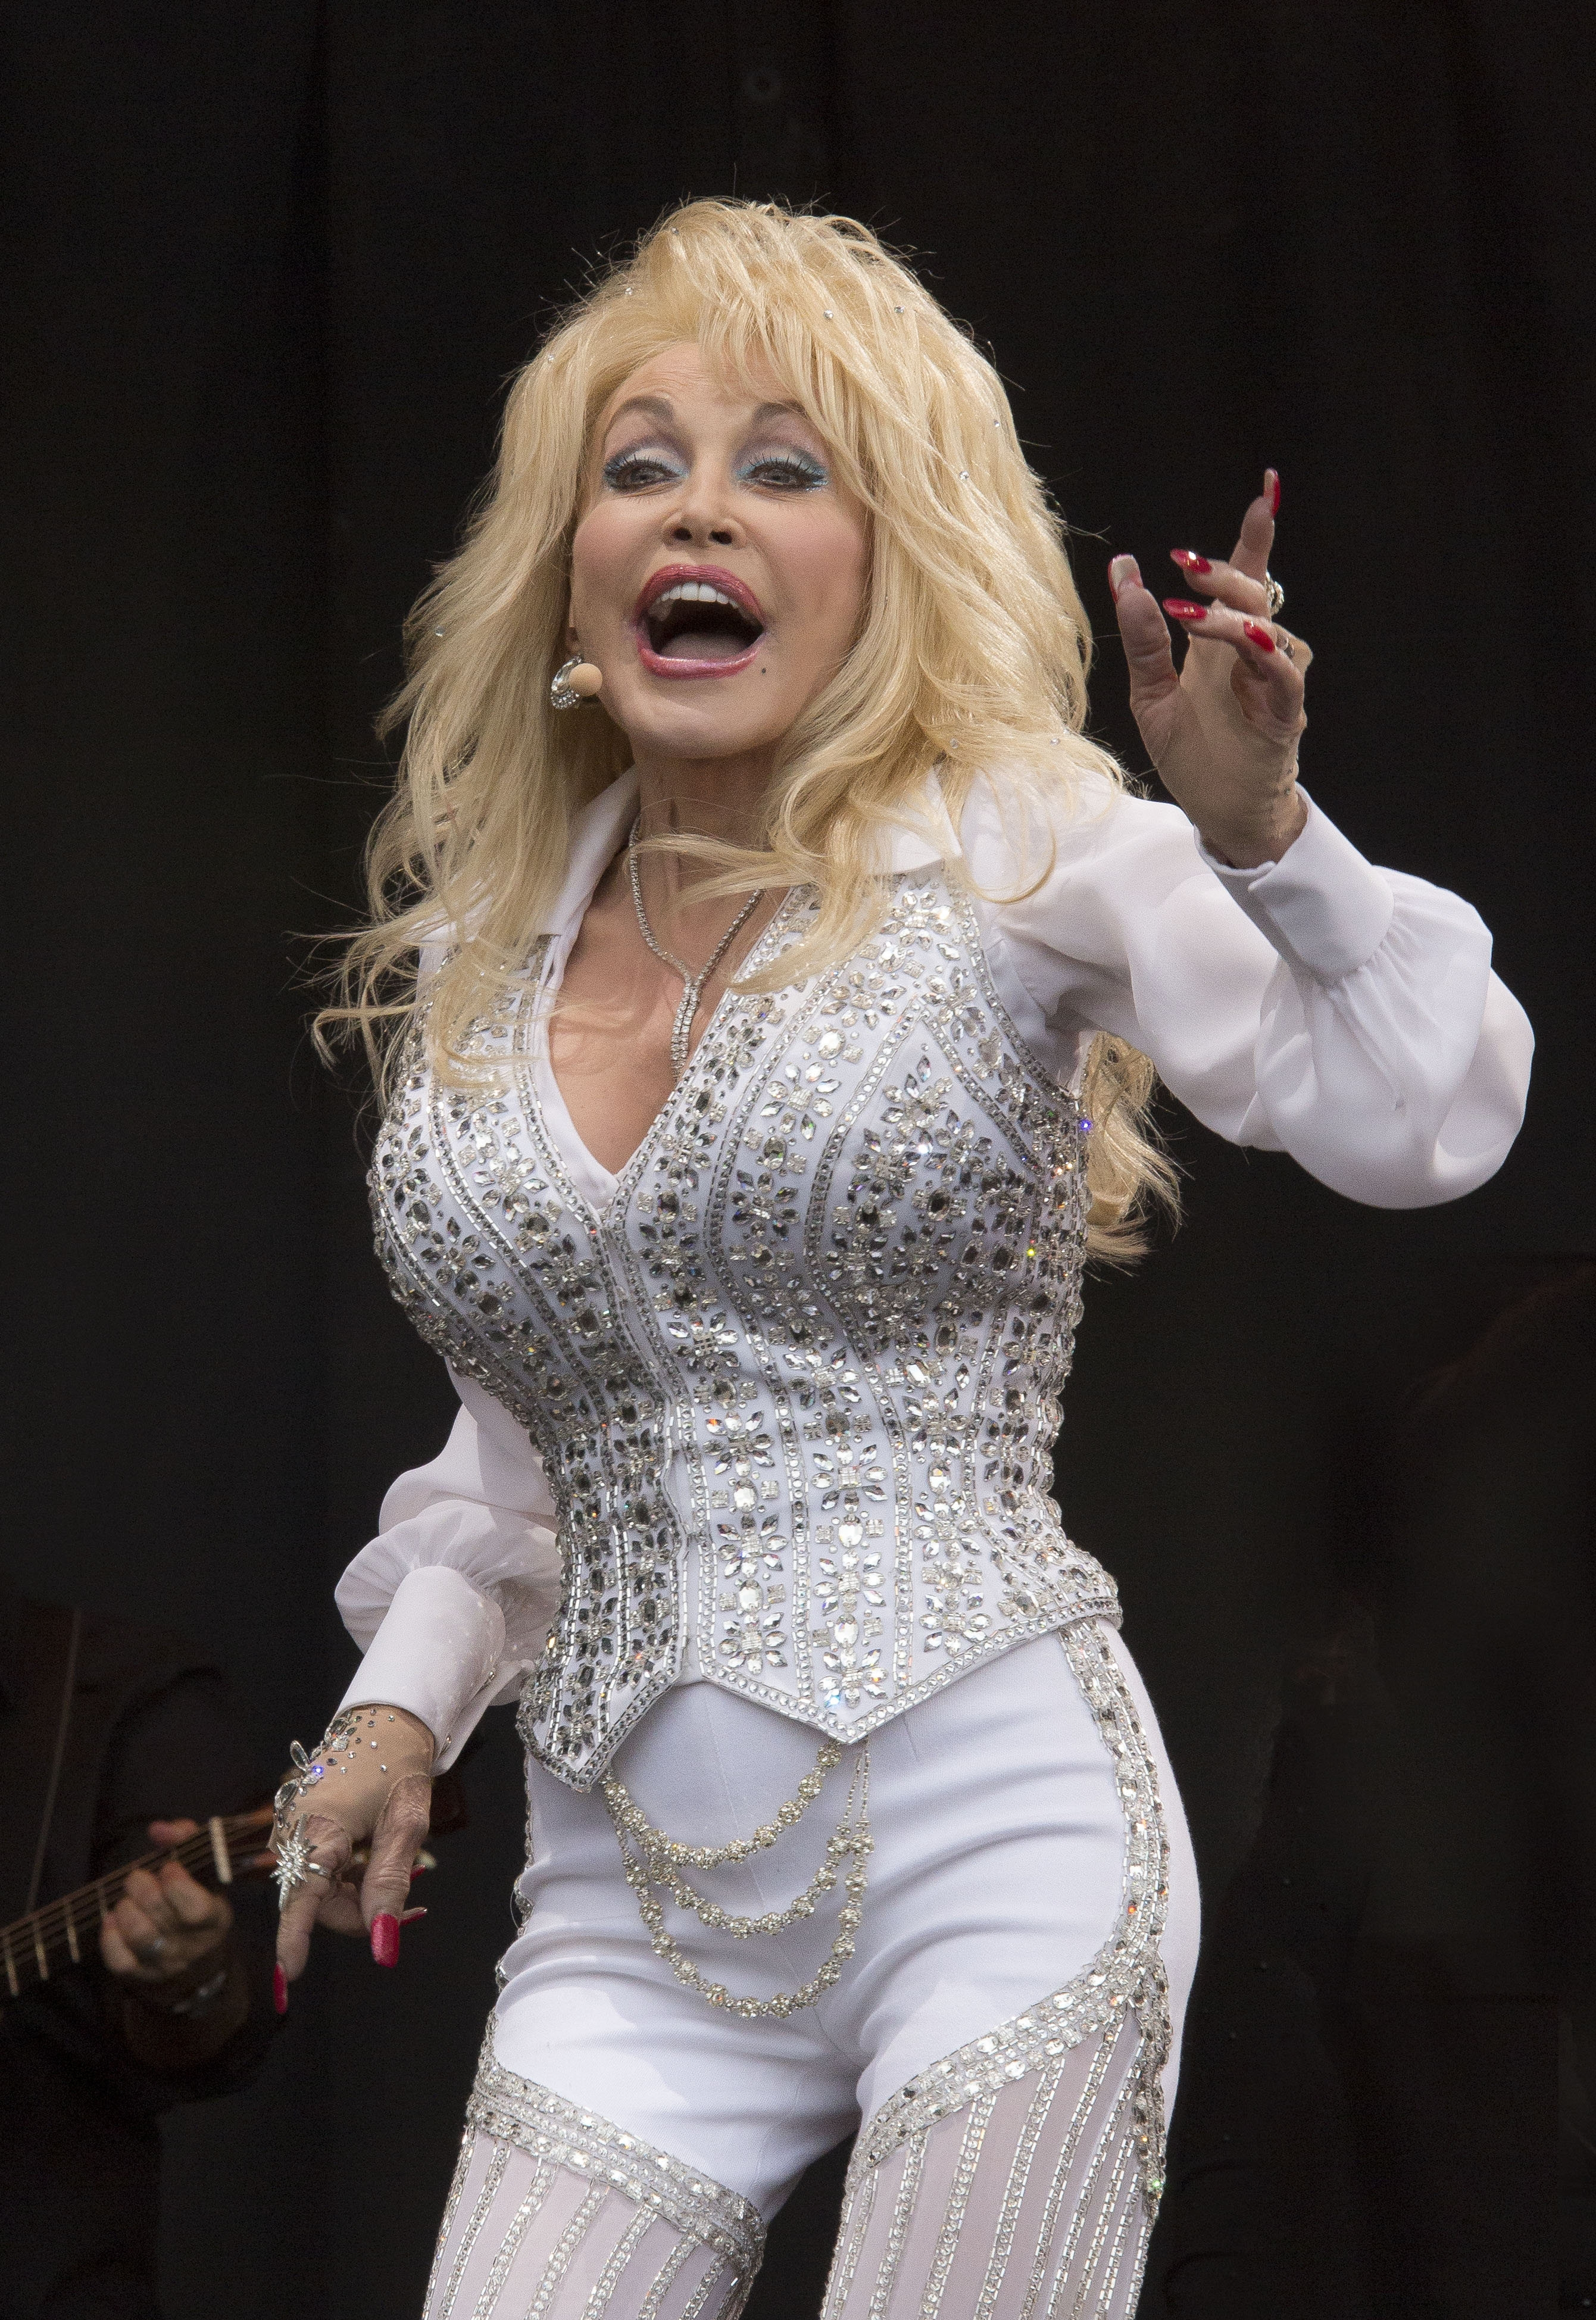 Dolly Parton performs on the main Pyramid stage Sunday at Glastonbury music festival in England, where thousands of hard rock fans have arrived for the annual event.